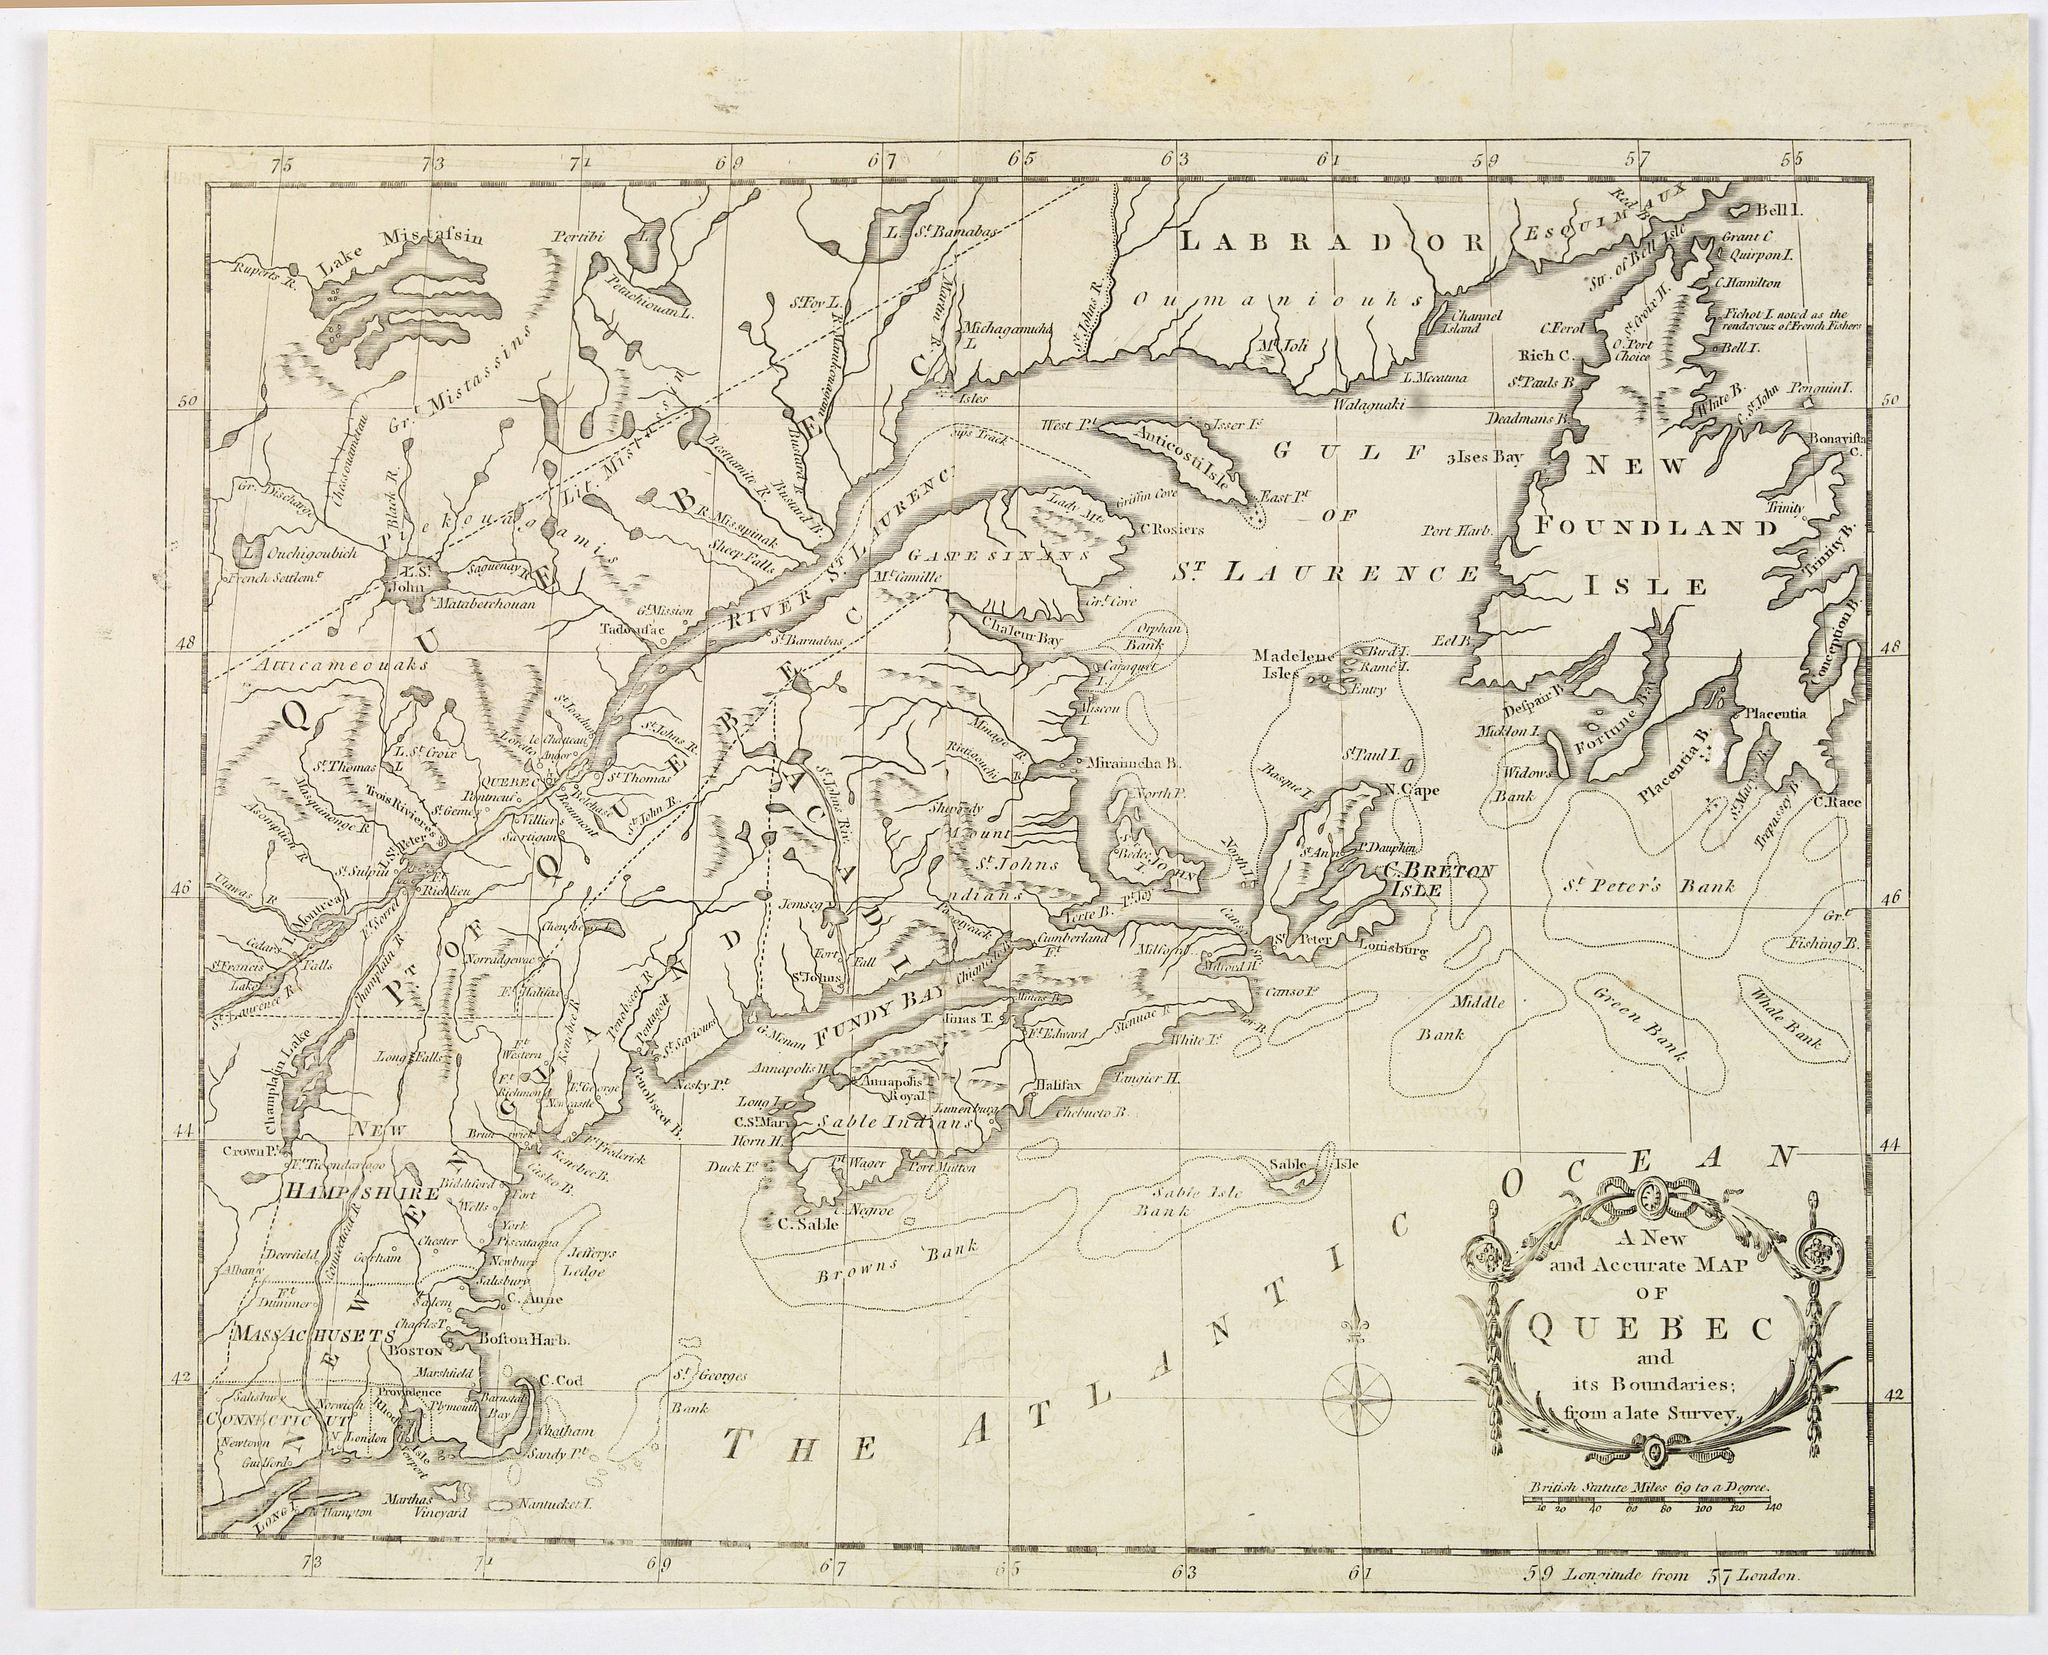 THE UNIVERSAL MAGAZINE. - A New and Accurate Mapp of Quebec and its Boundaries, from a late Survey.